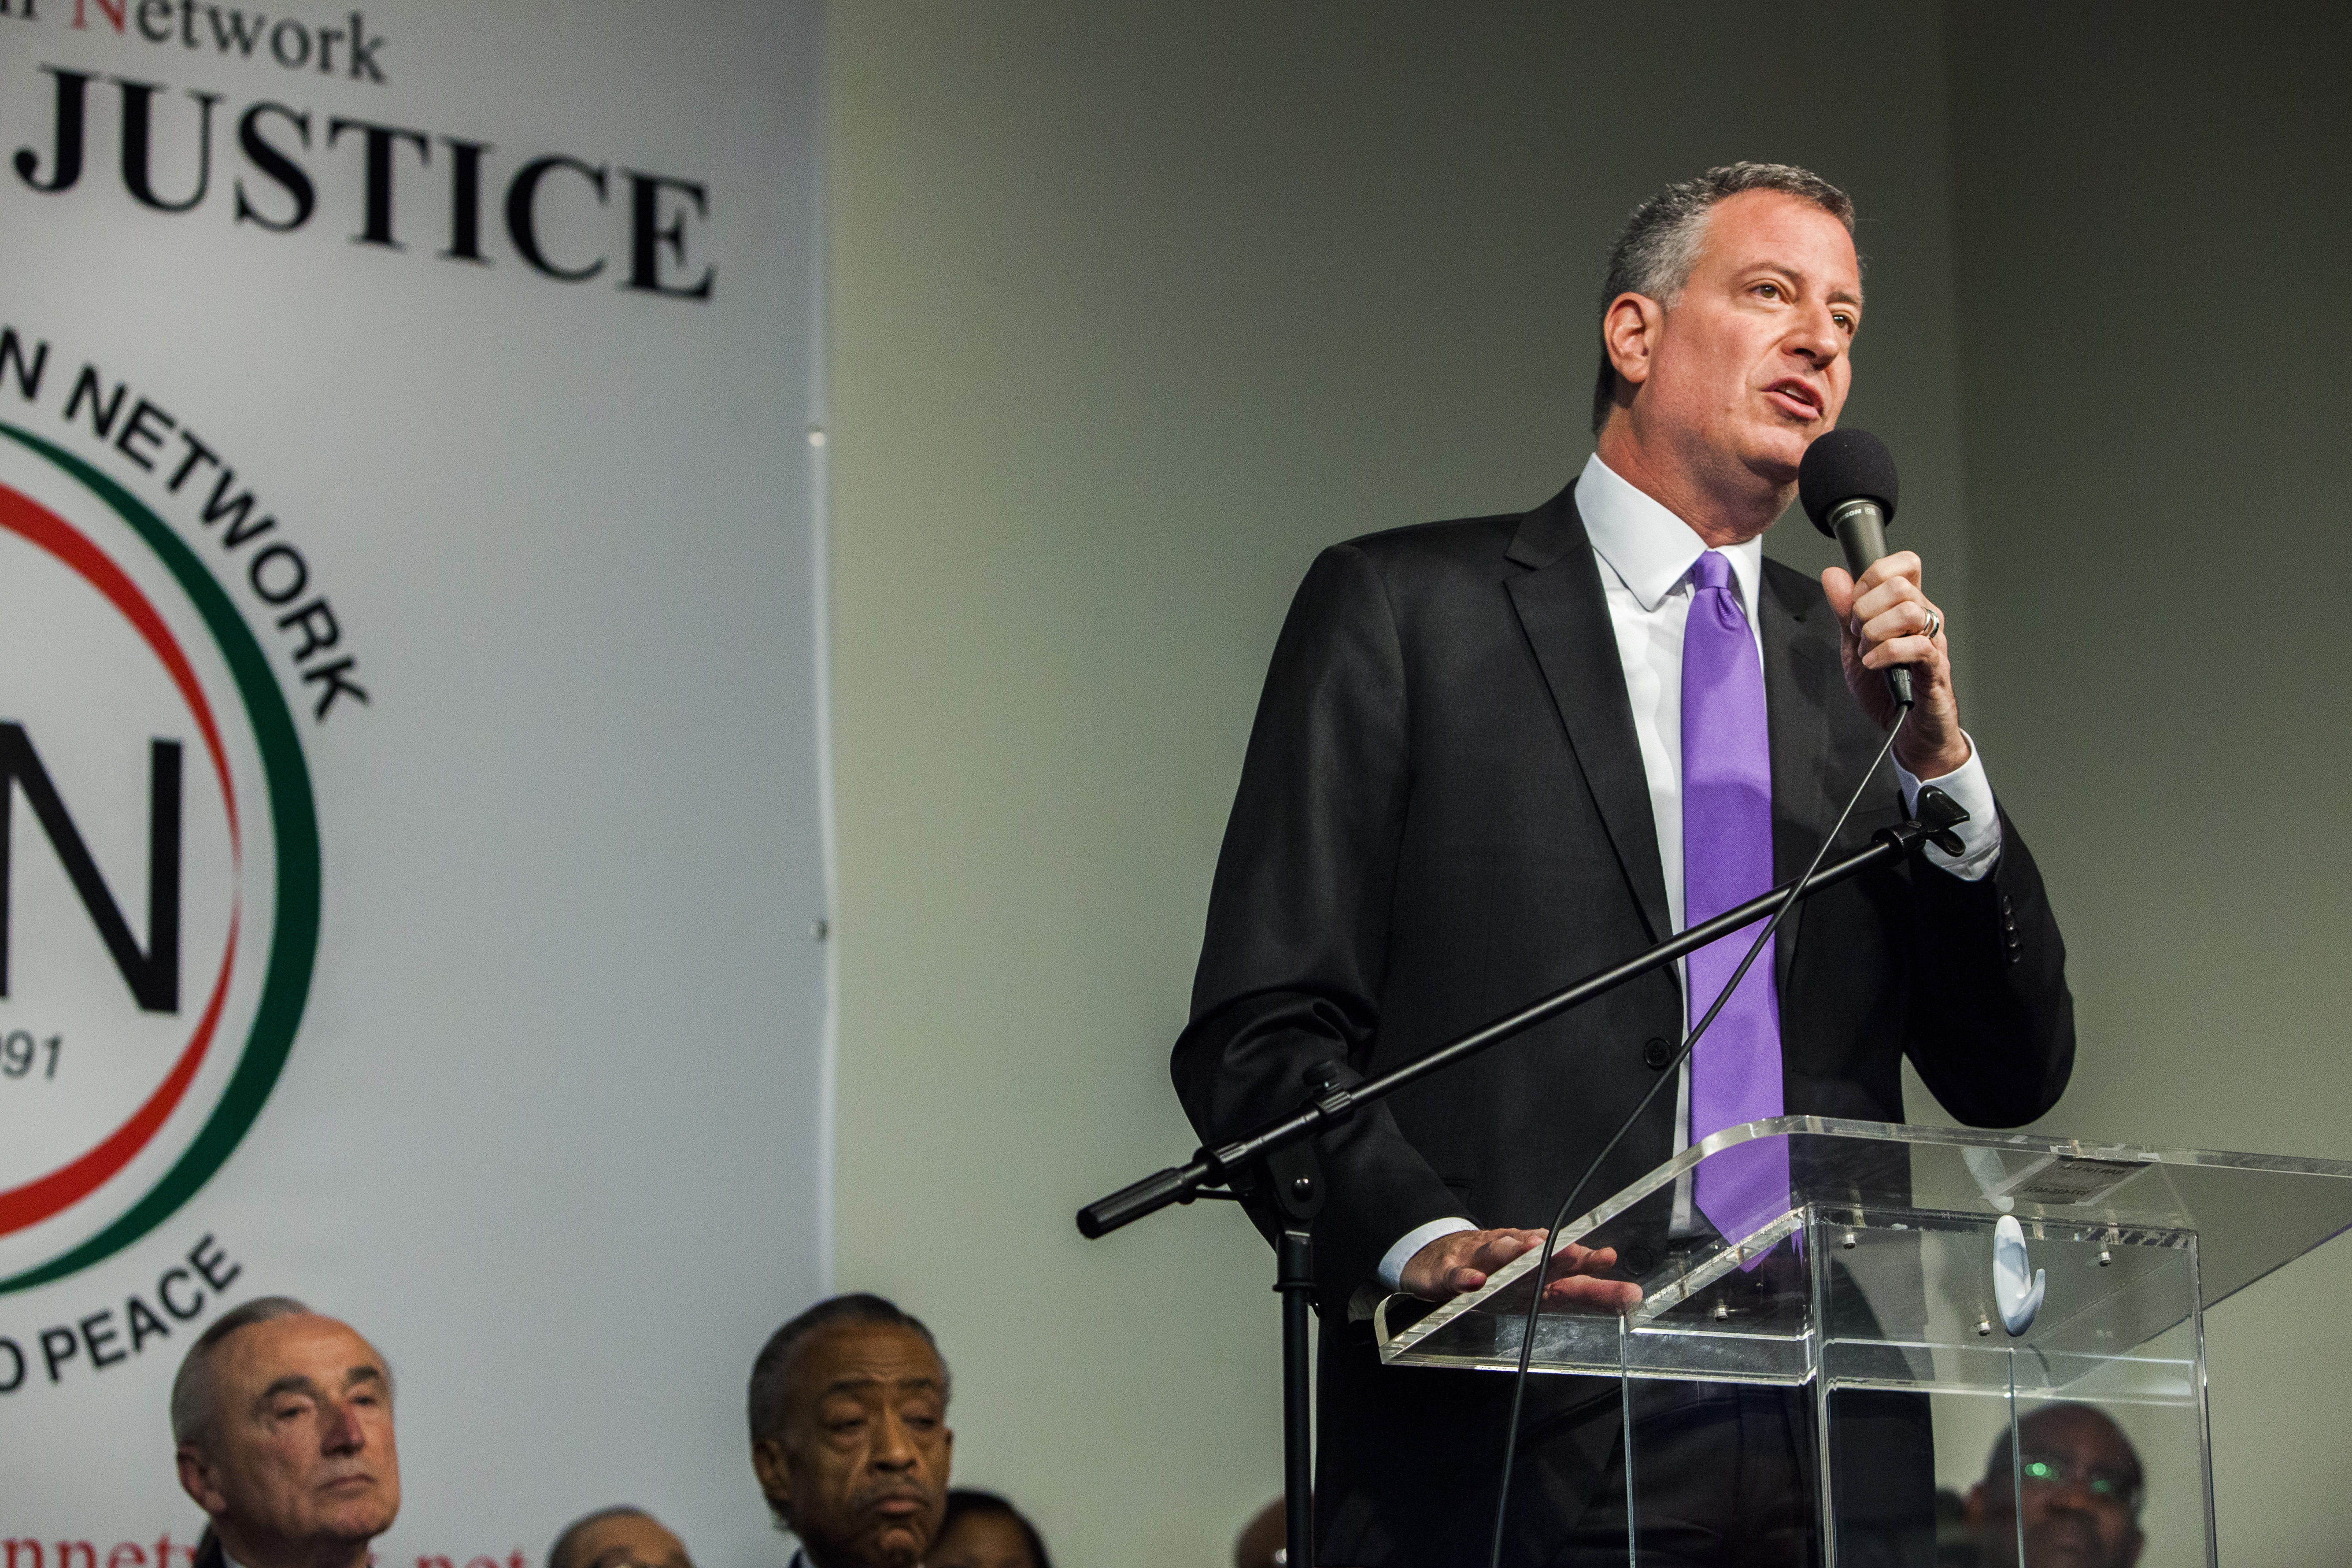 Mayor-elect Bill de Blasio will be the first New York City mayor since Rudolph Giuliani to live in Gracie Mansion.